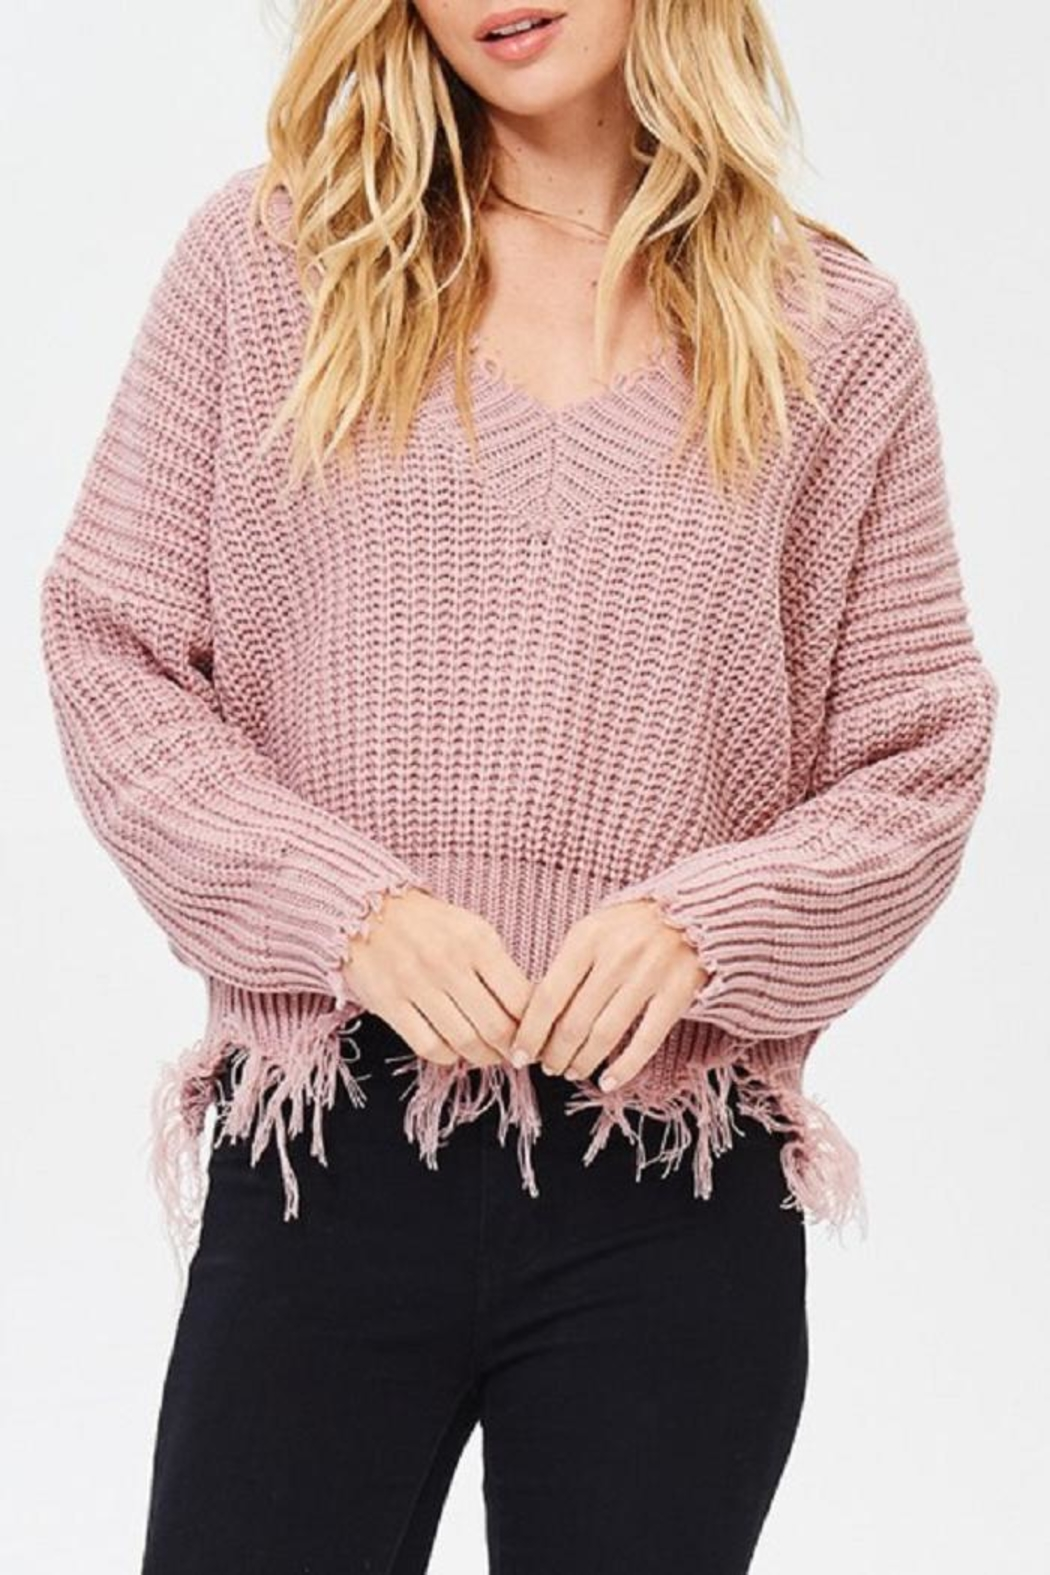 Main Strip Frayed V Neck Sweater - Front Cropped Image